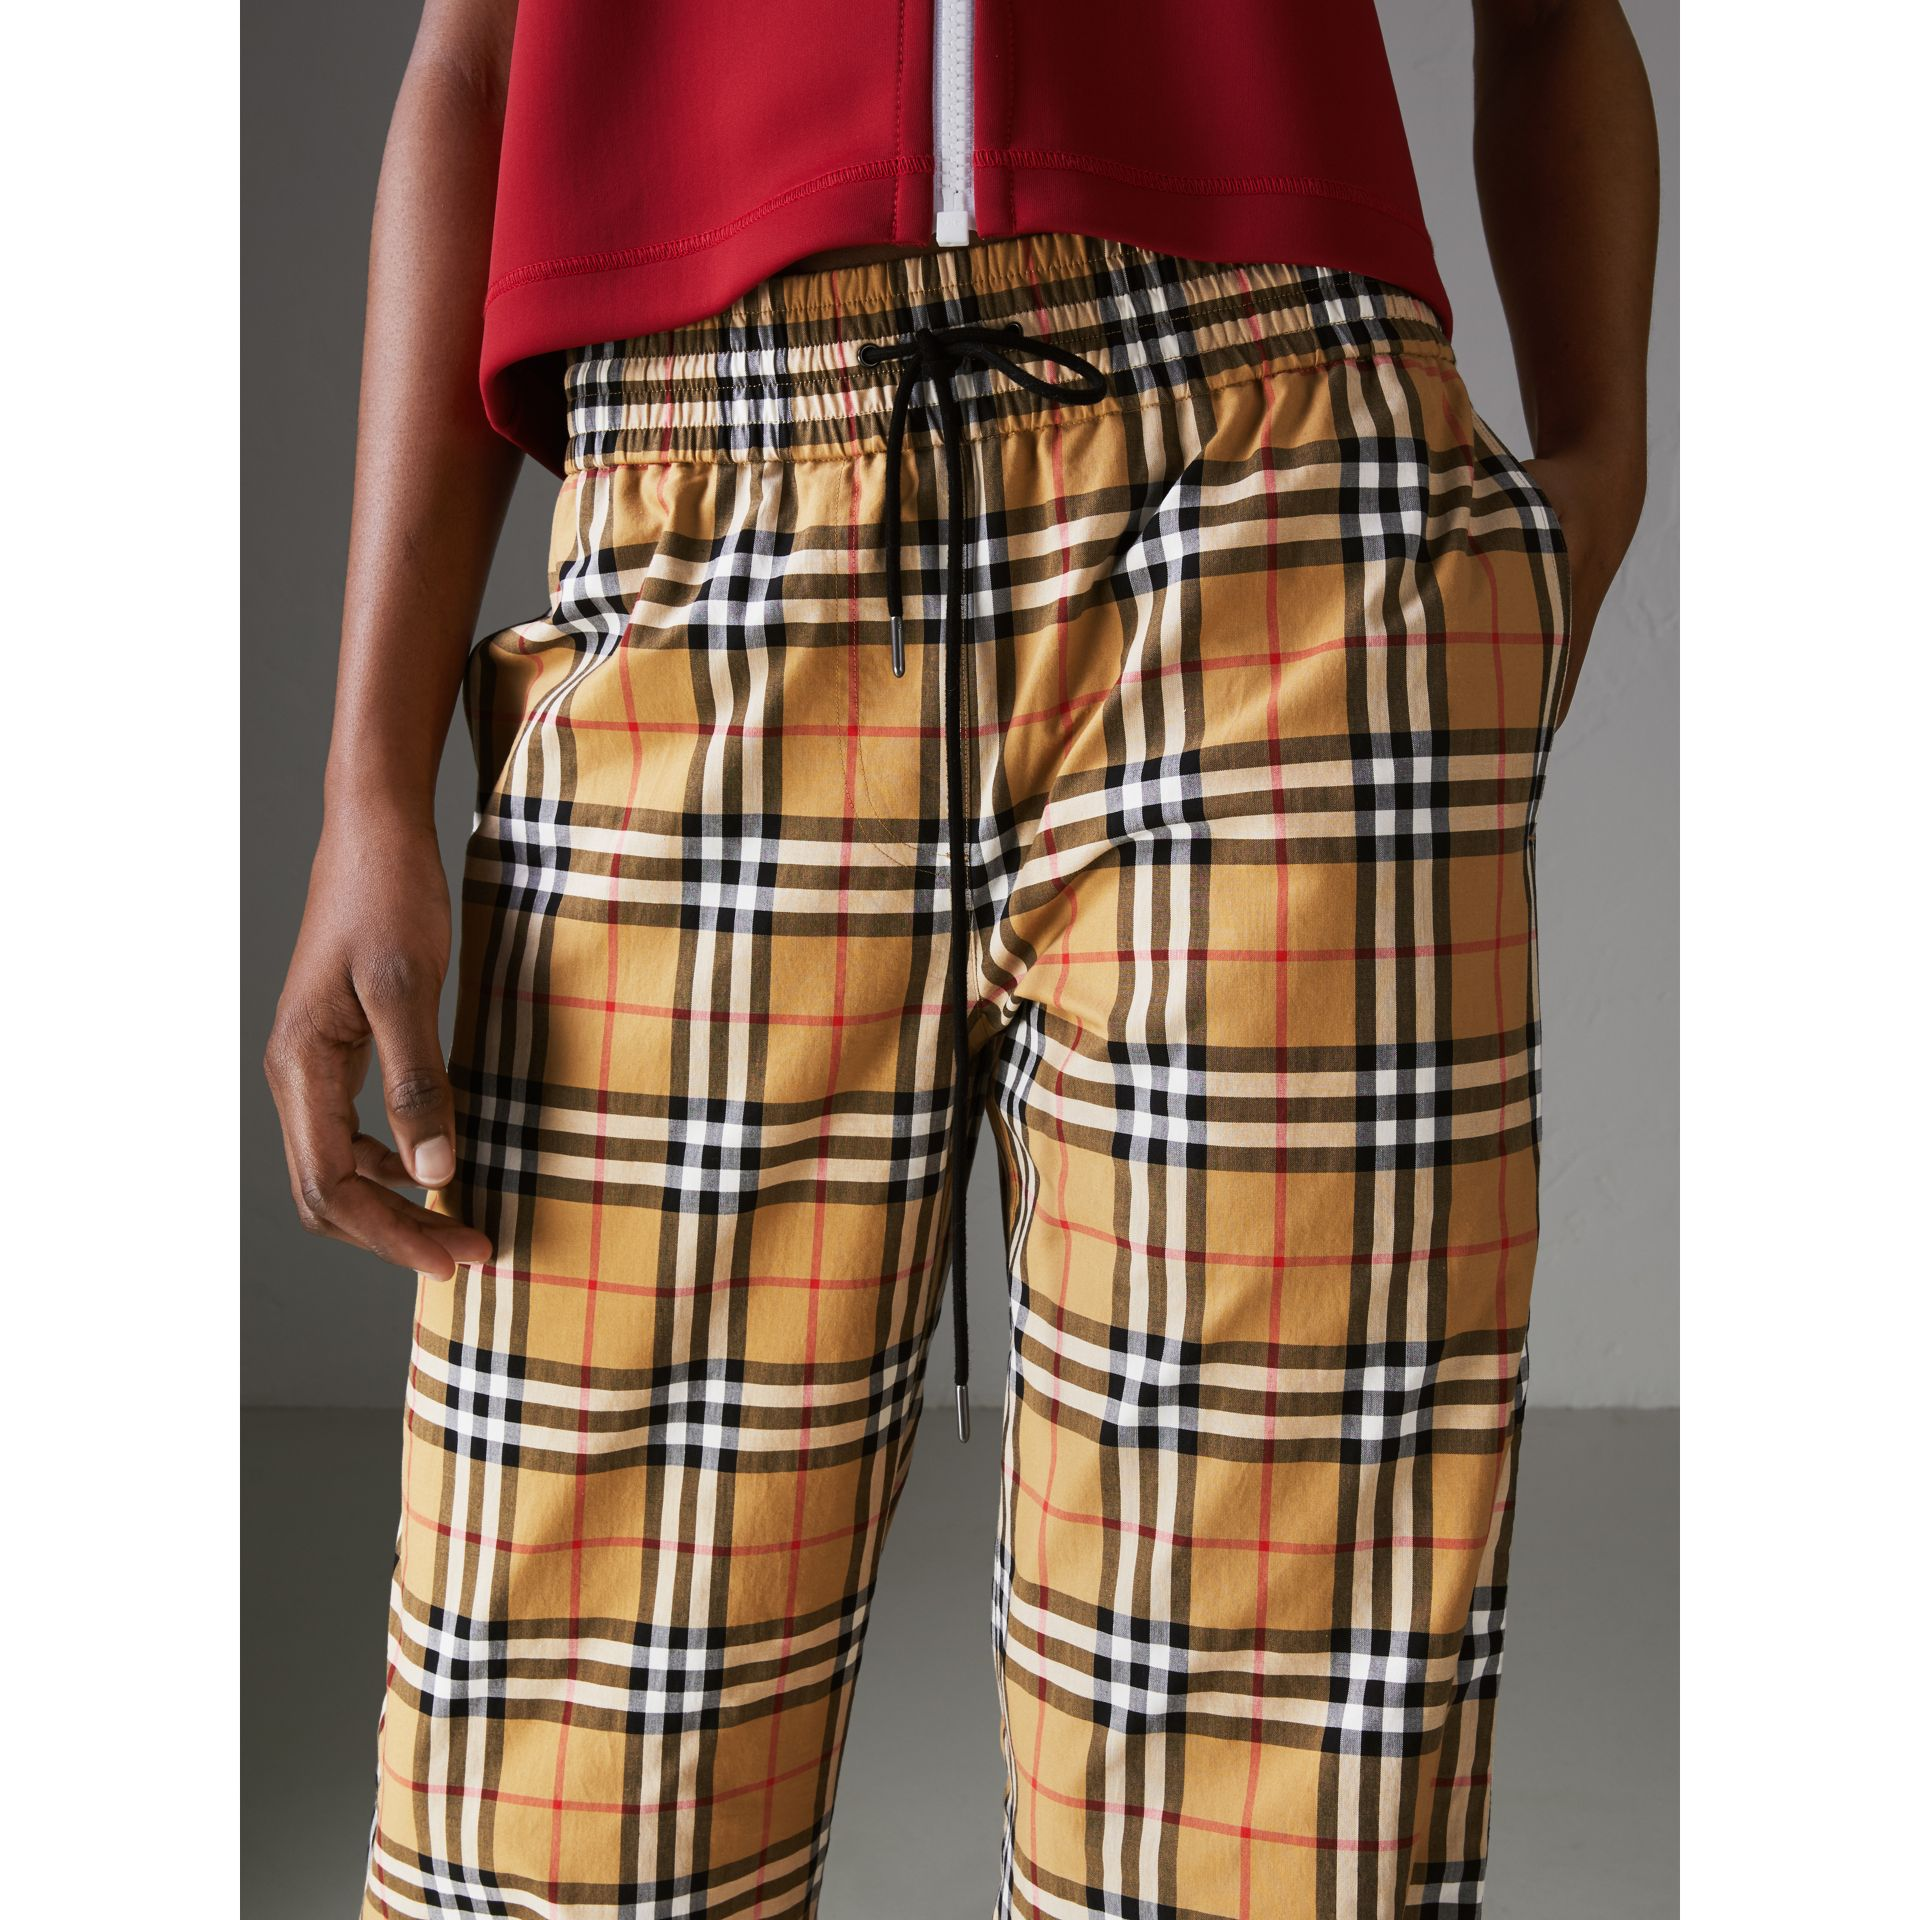 Pantalon à motif Vintage check avec cordon de serrage (Jaune Antique) - Femme | Burberry - photo de la galerie 1